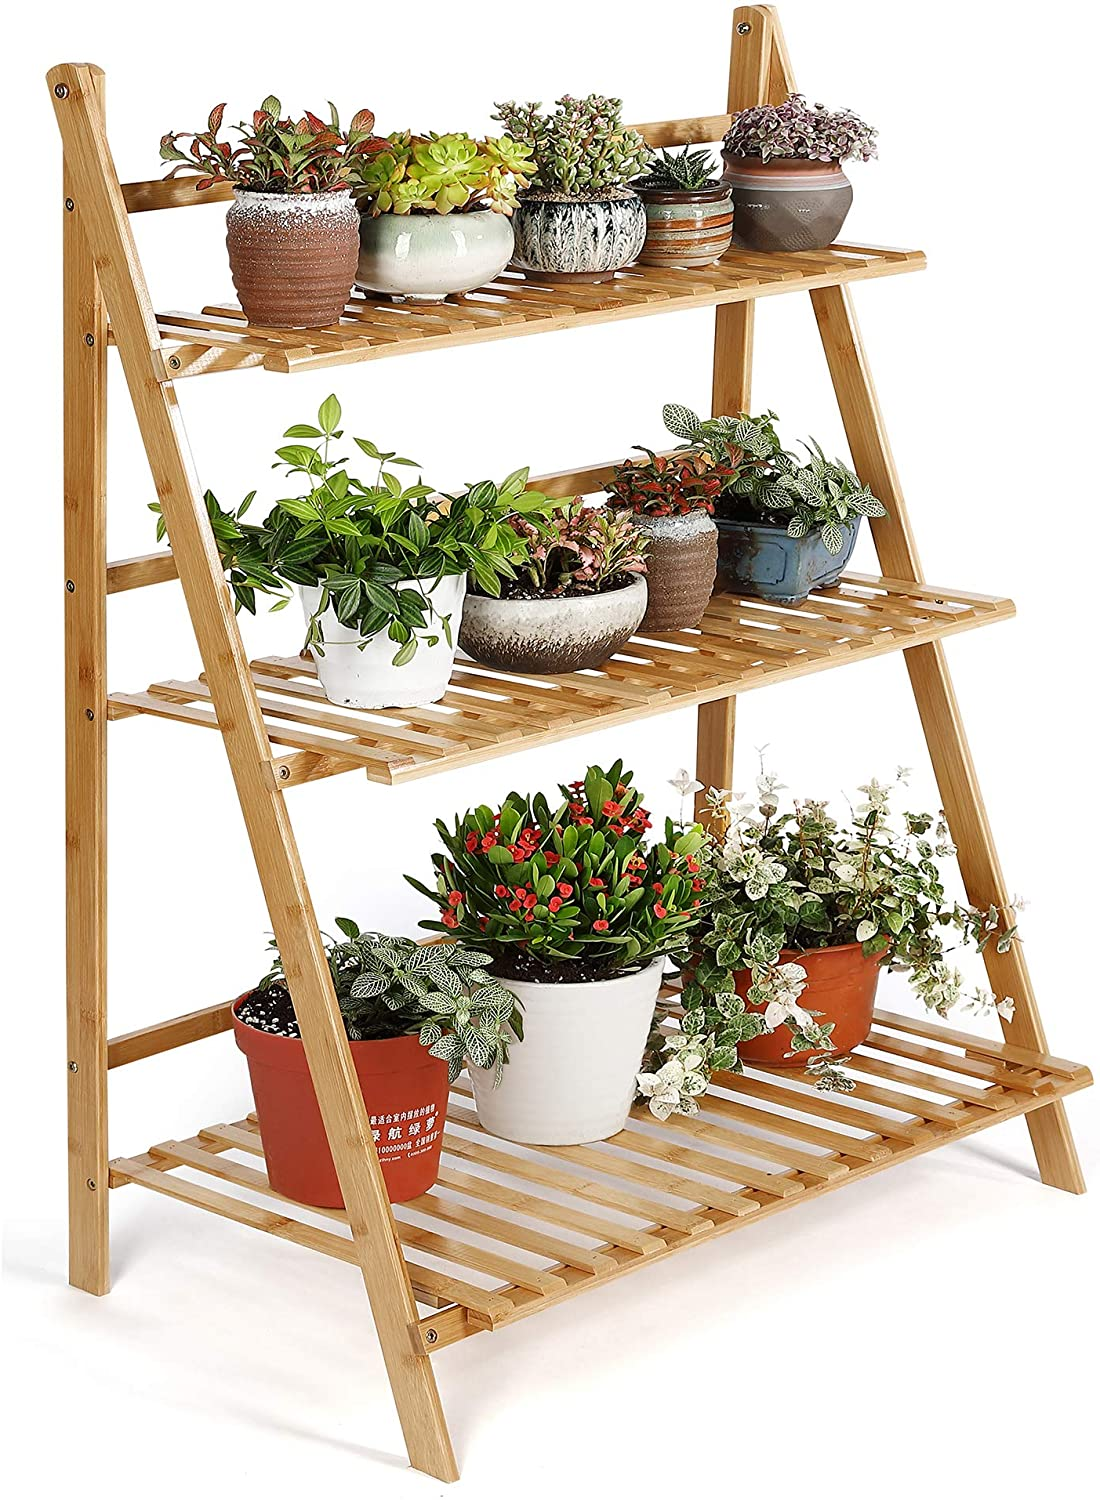 HYNAWIN Bamboo Plant Stand, 8 Tiers Plant Rack, Flower Display Rack,  Storage Shelf for Indoor Outdoor Home Patio Lawn Garden Balcony Organizer  Planter ...